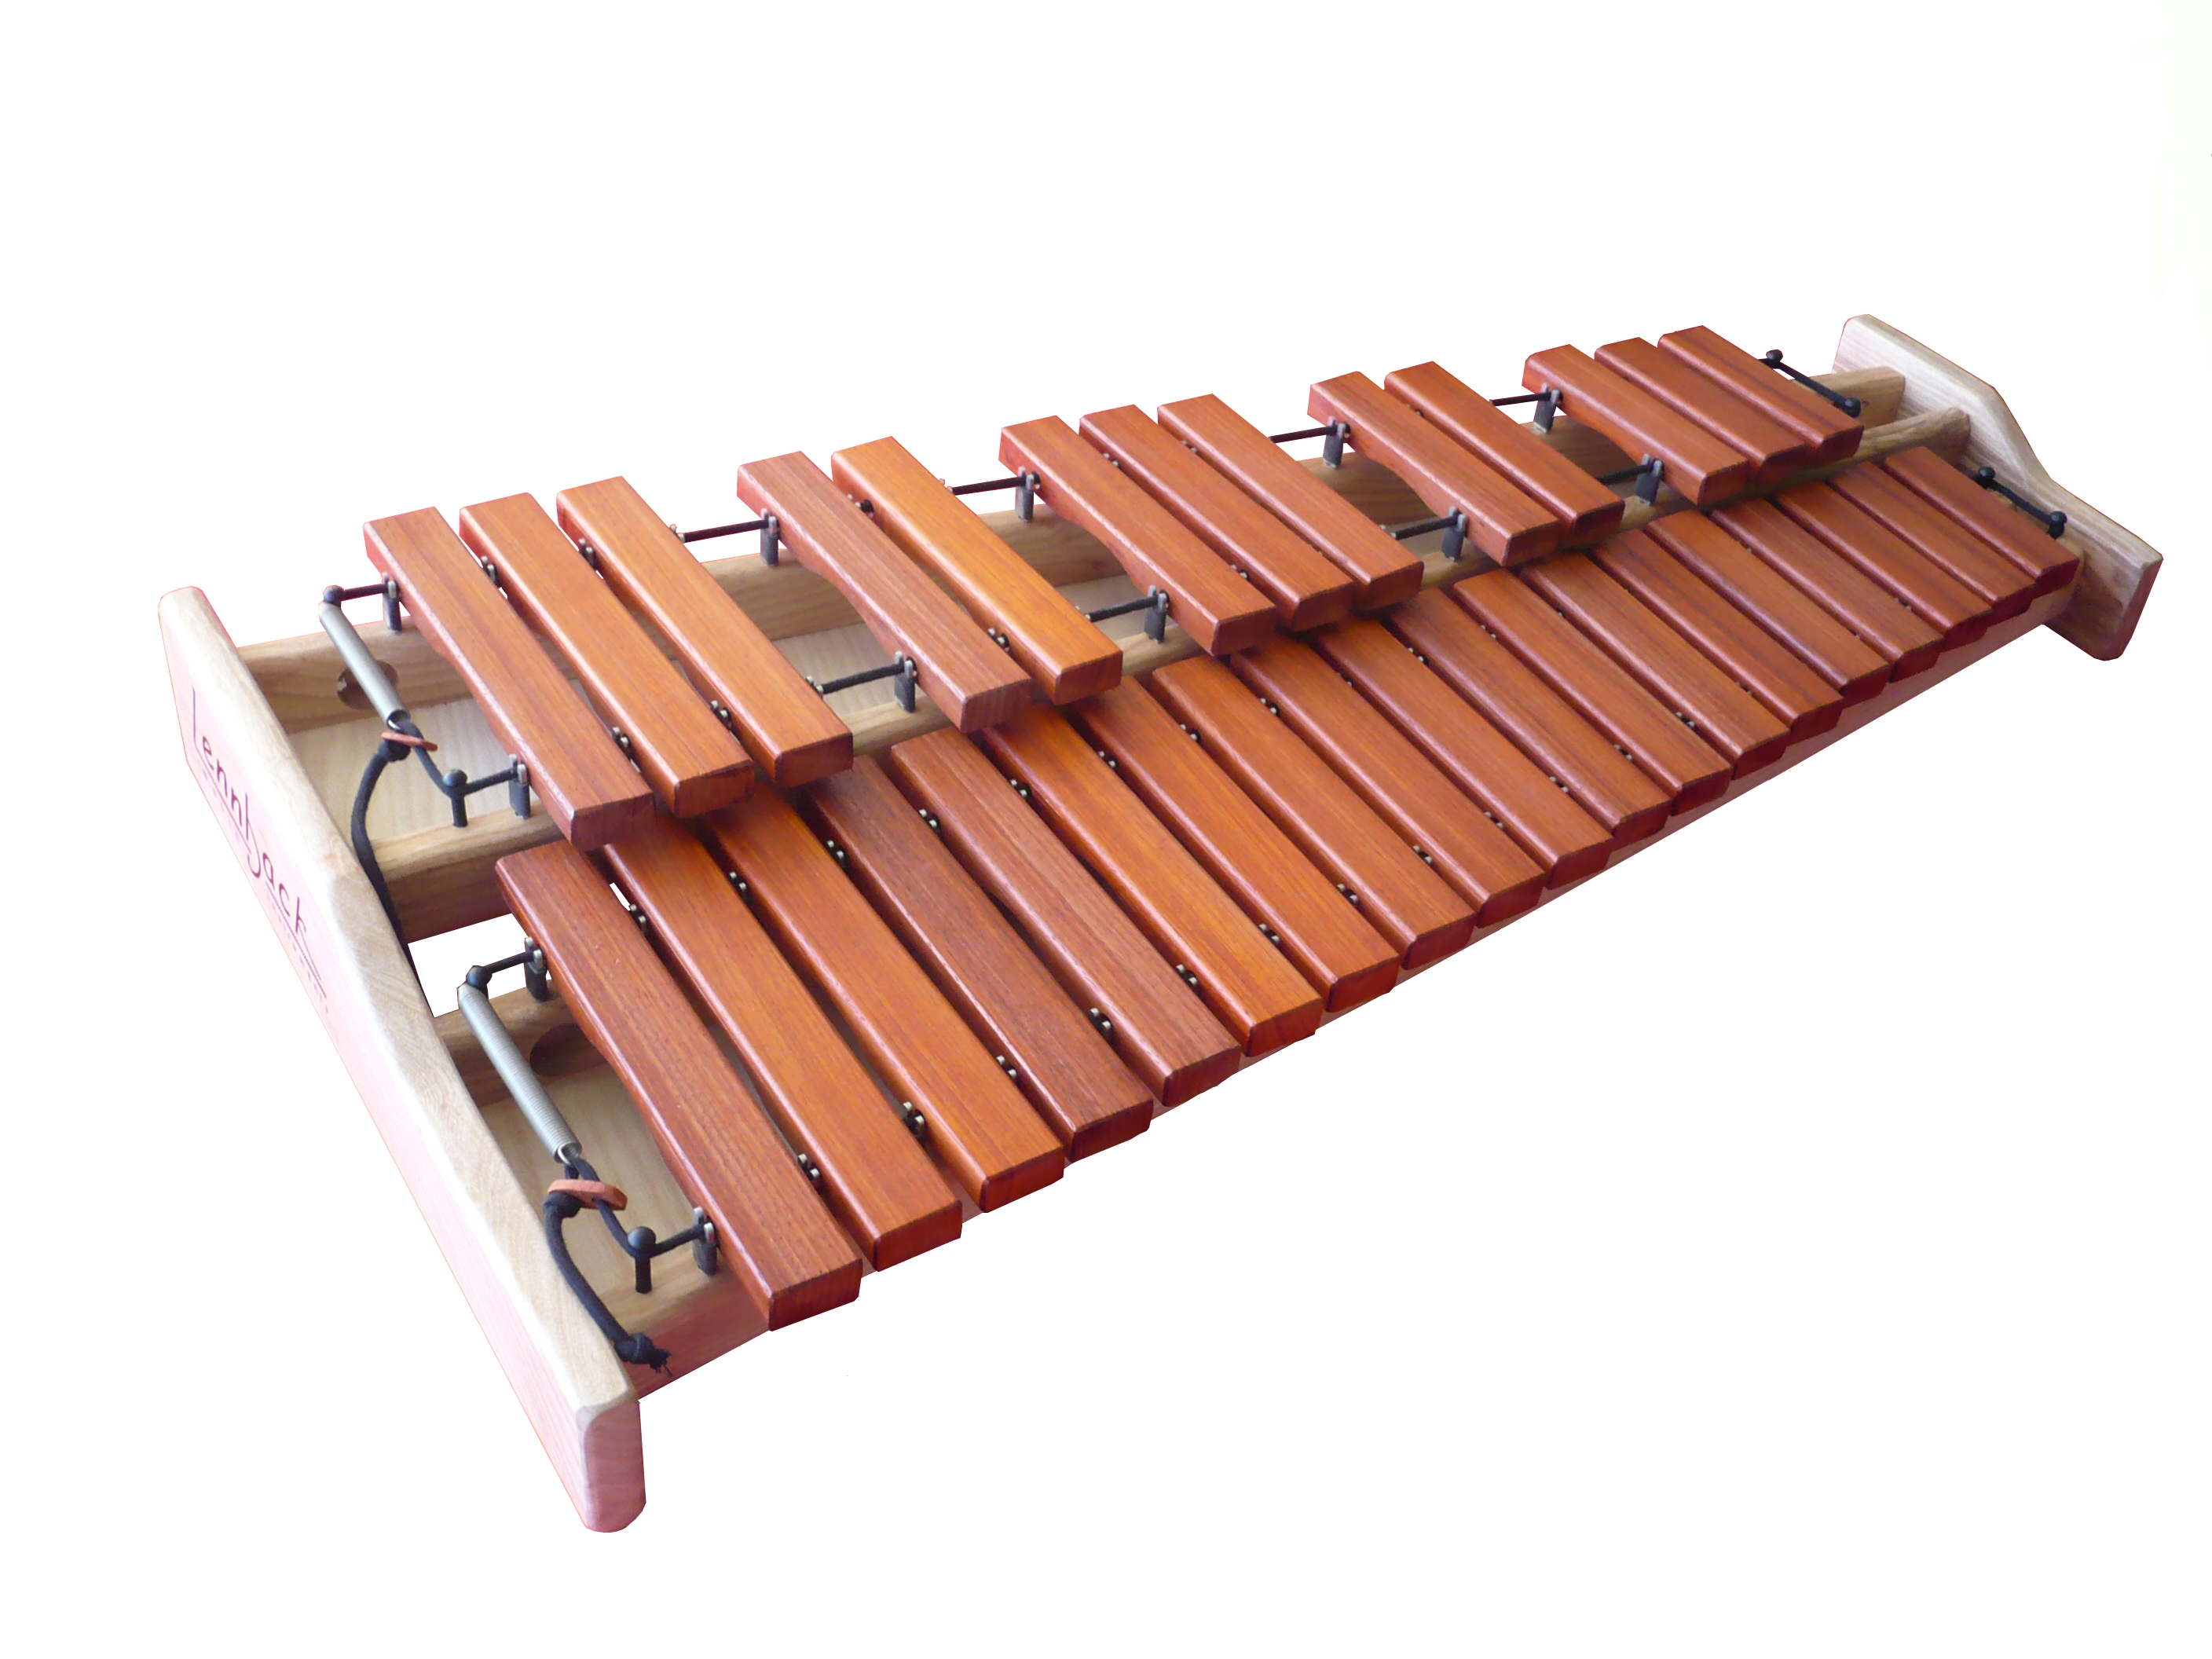 New design digital collection. Xylophone clipart